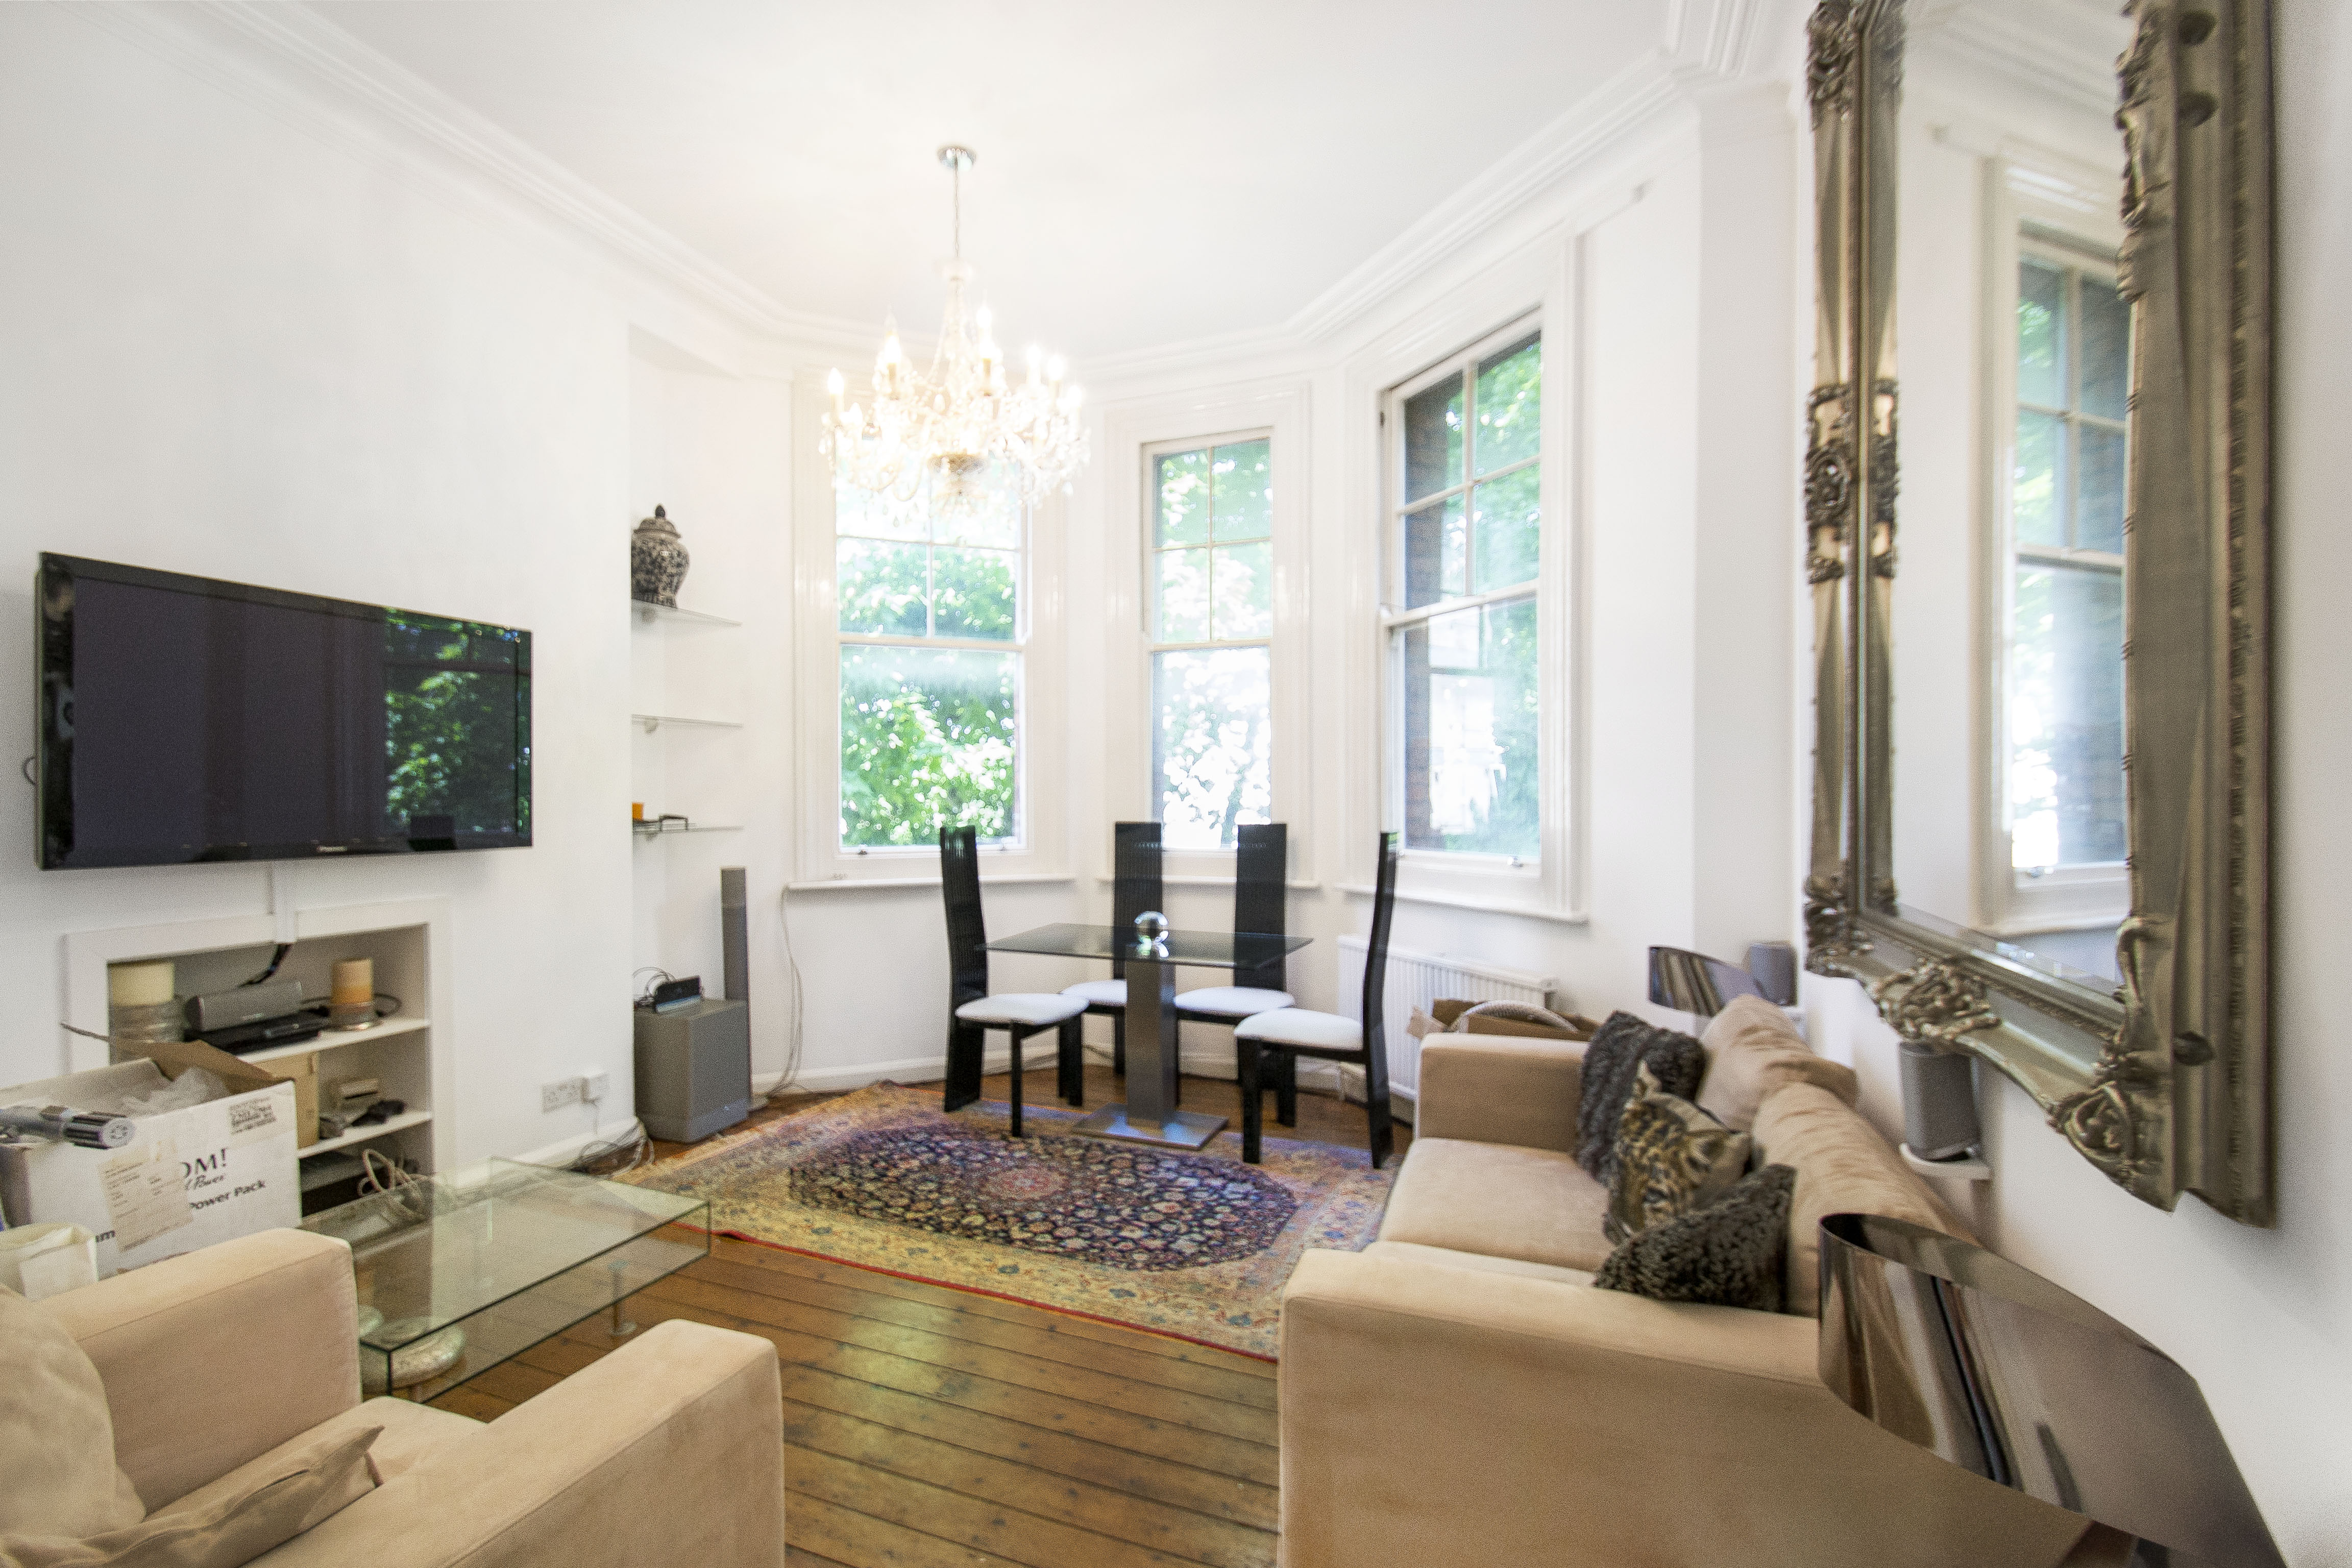 Moscow Mansions, Cromwell Road, Earls Court SW5